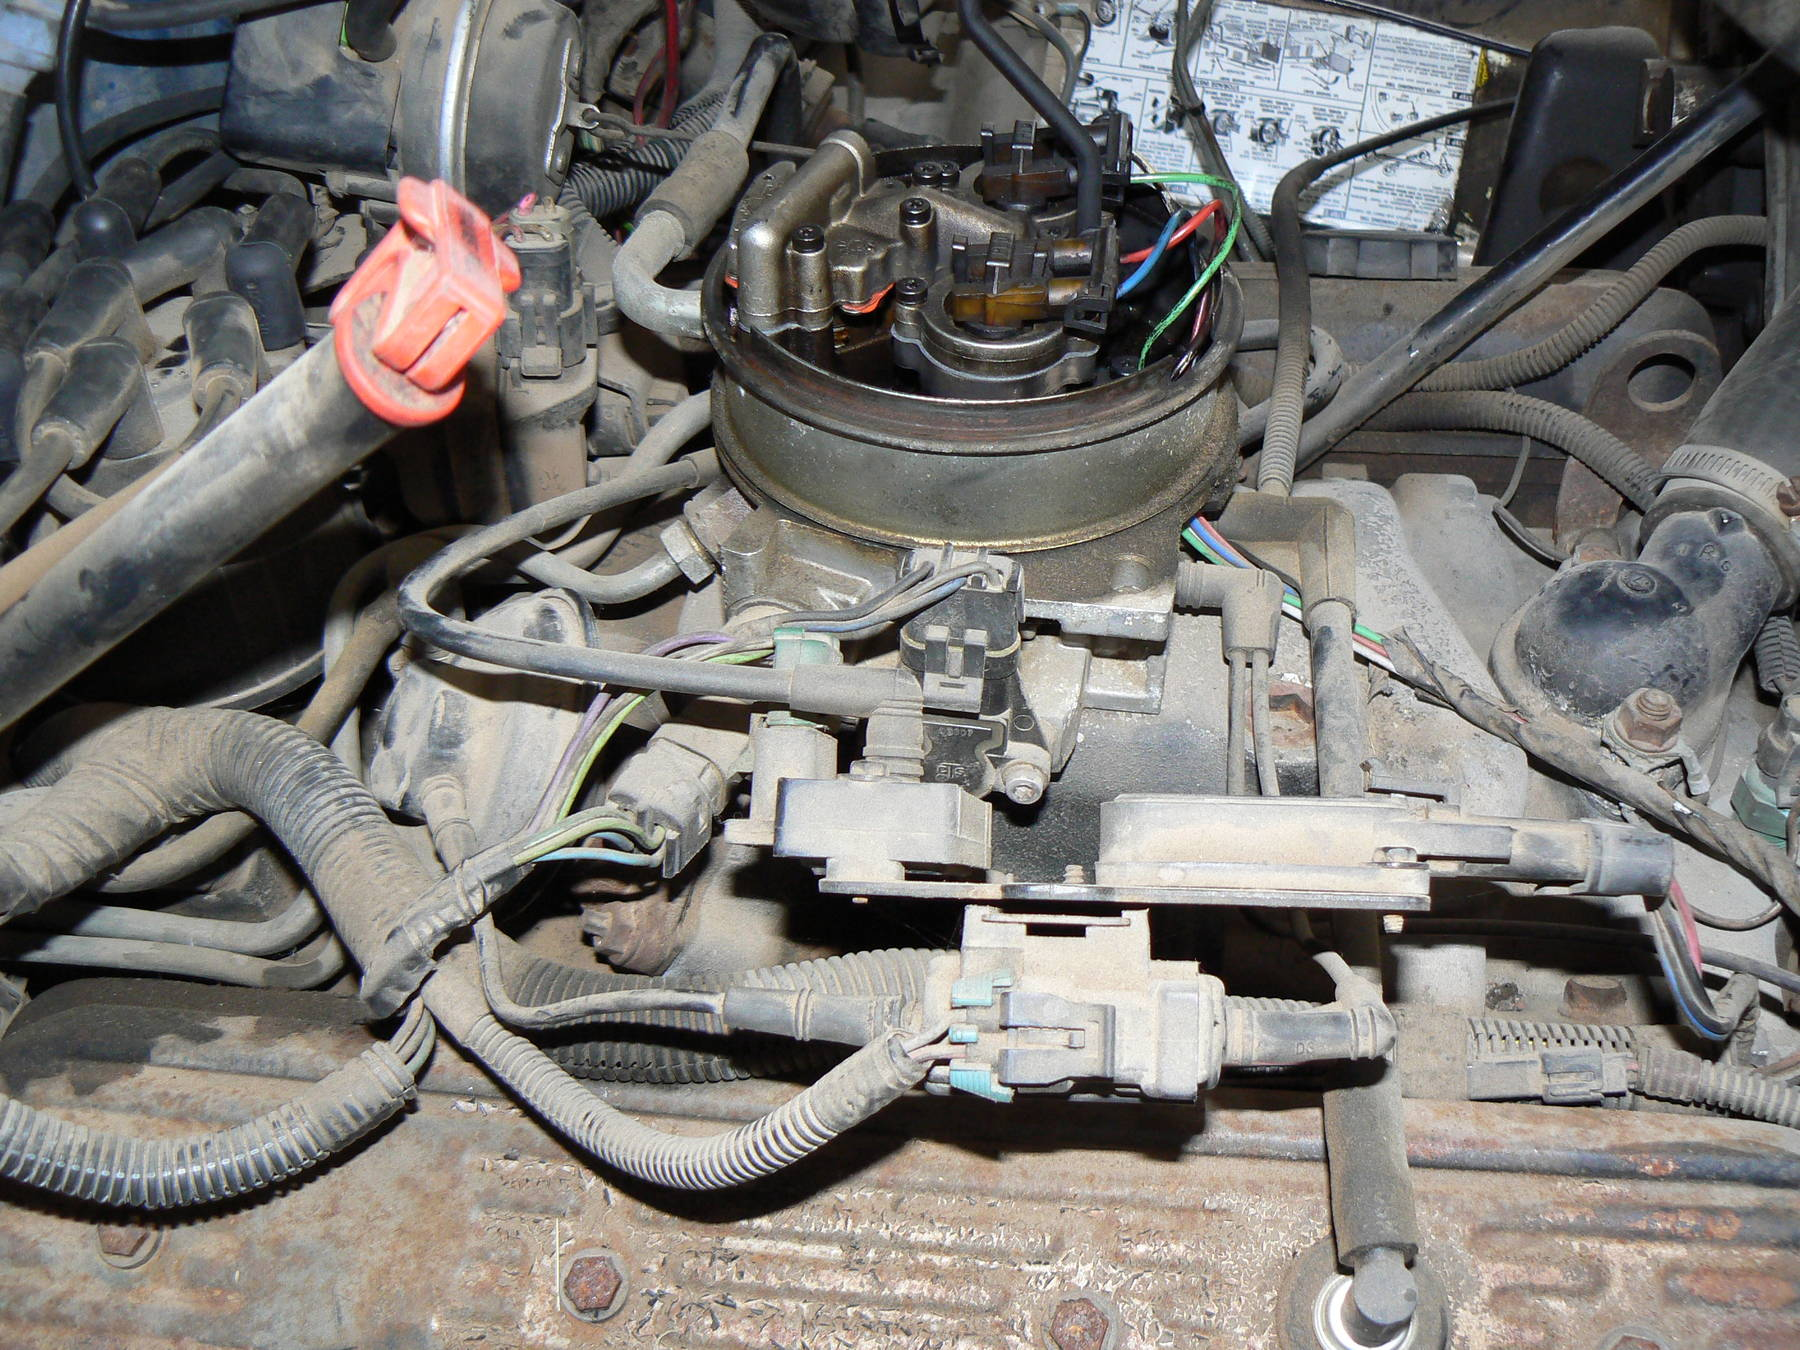 1988 350 tbi idles funny  stalls when put in gear  and